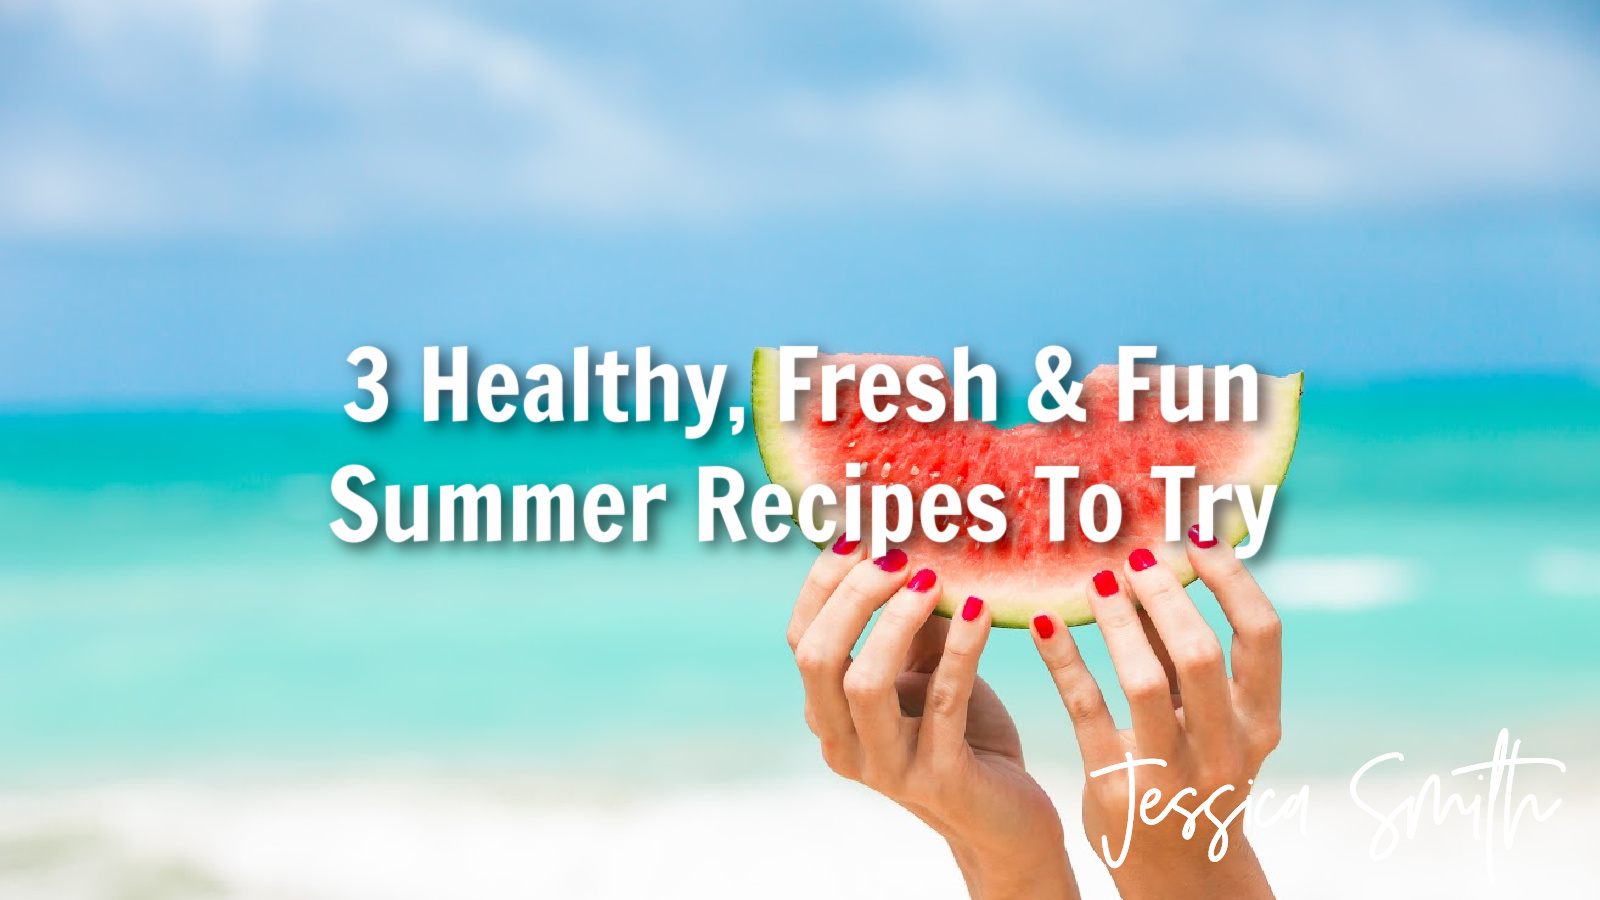 3 Healthy, Fresh & Fun Summer Recipes To Try